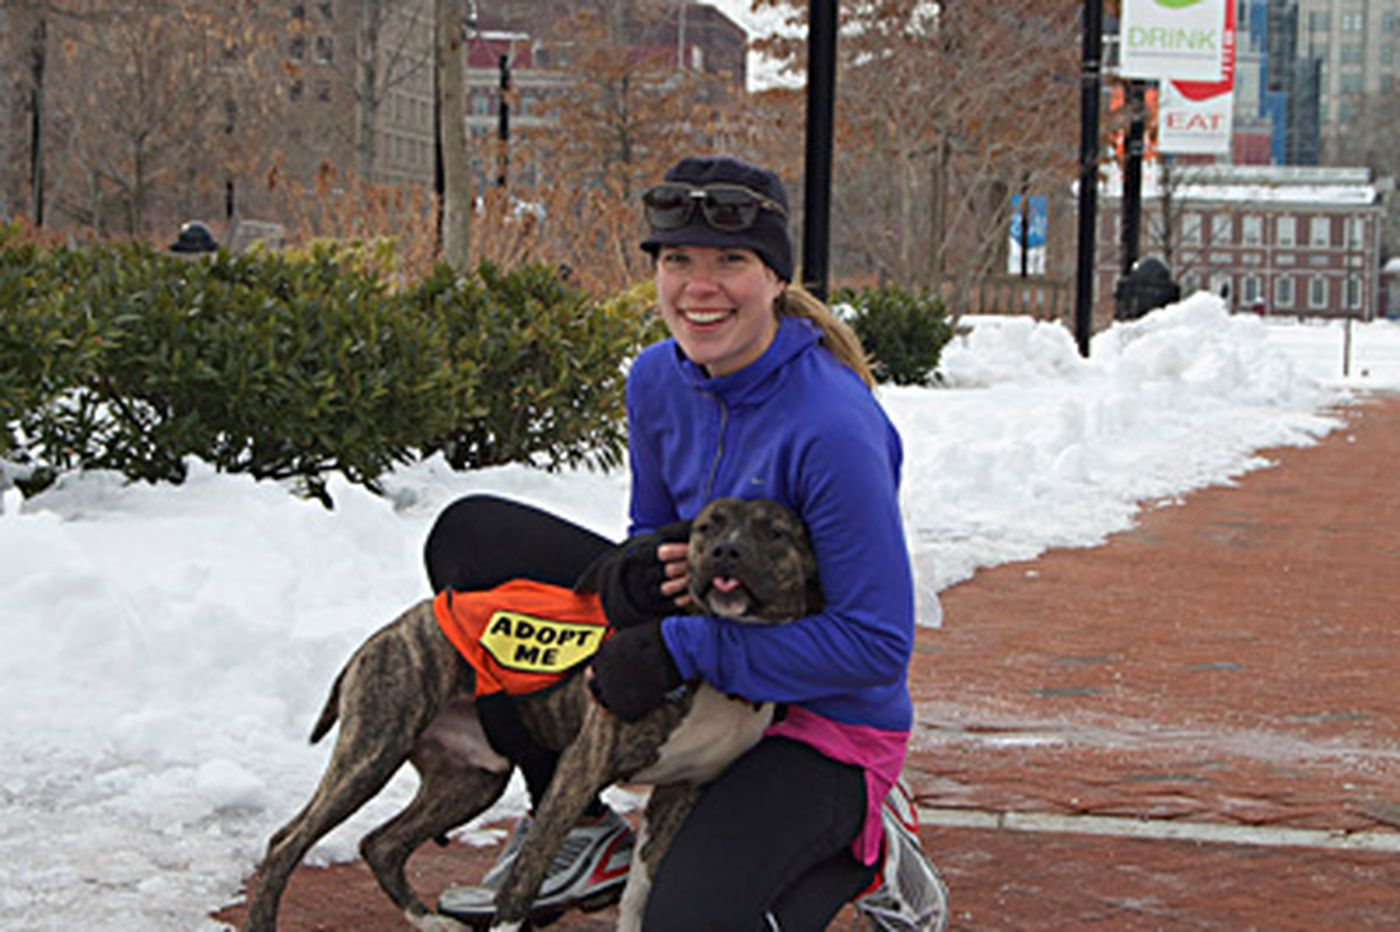 Dogs run with Broad Street entrants - in spirit